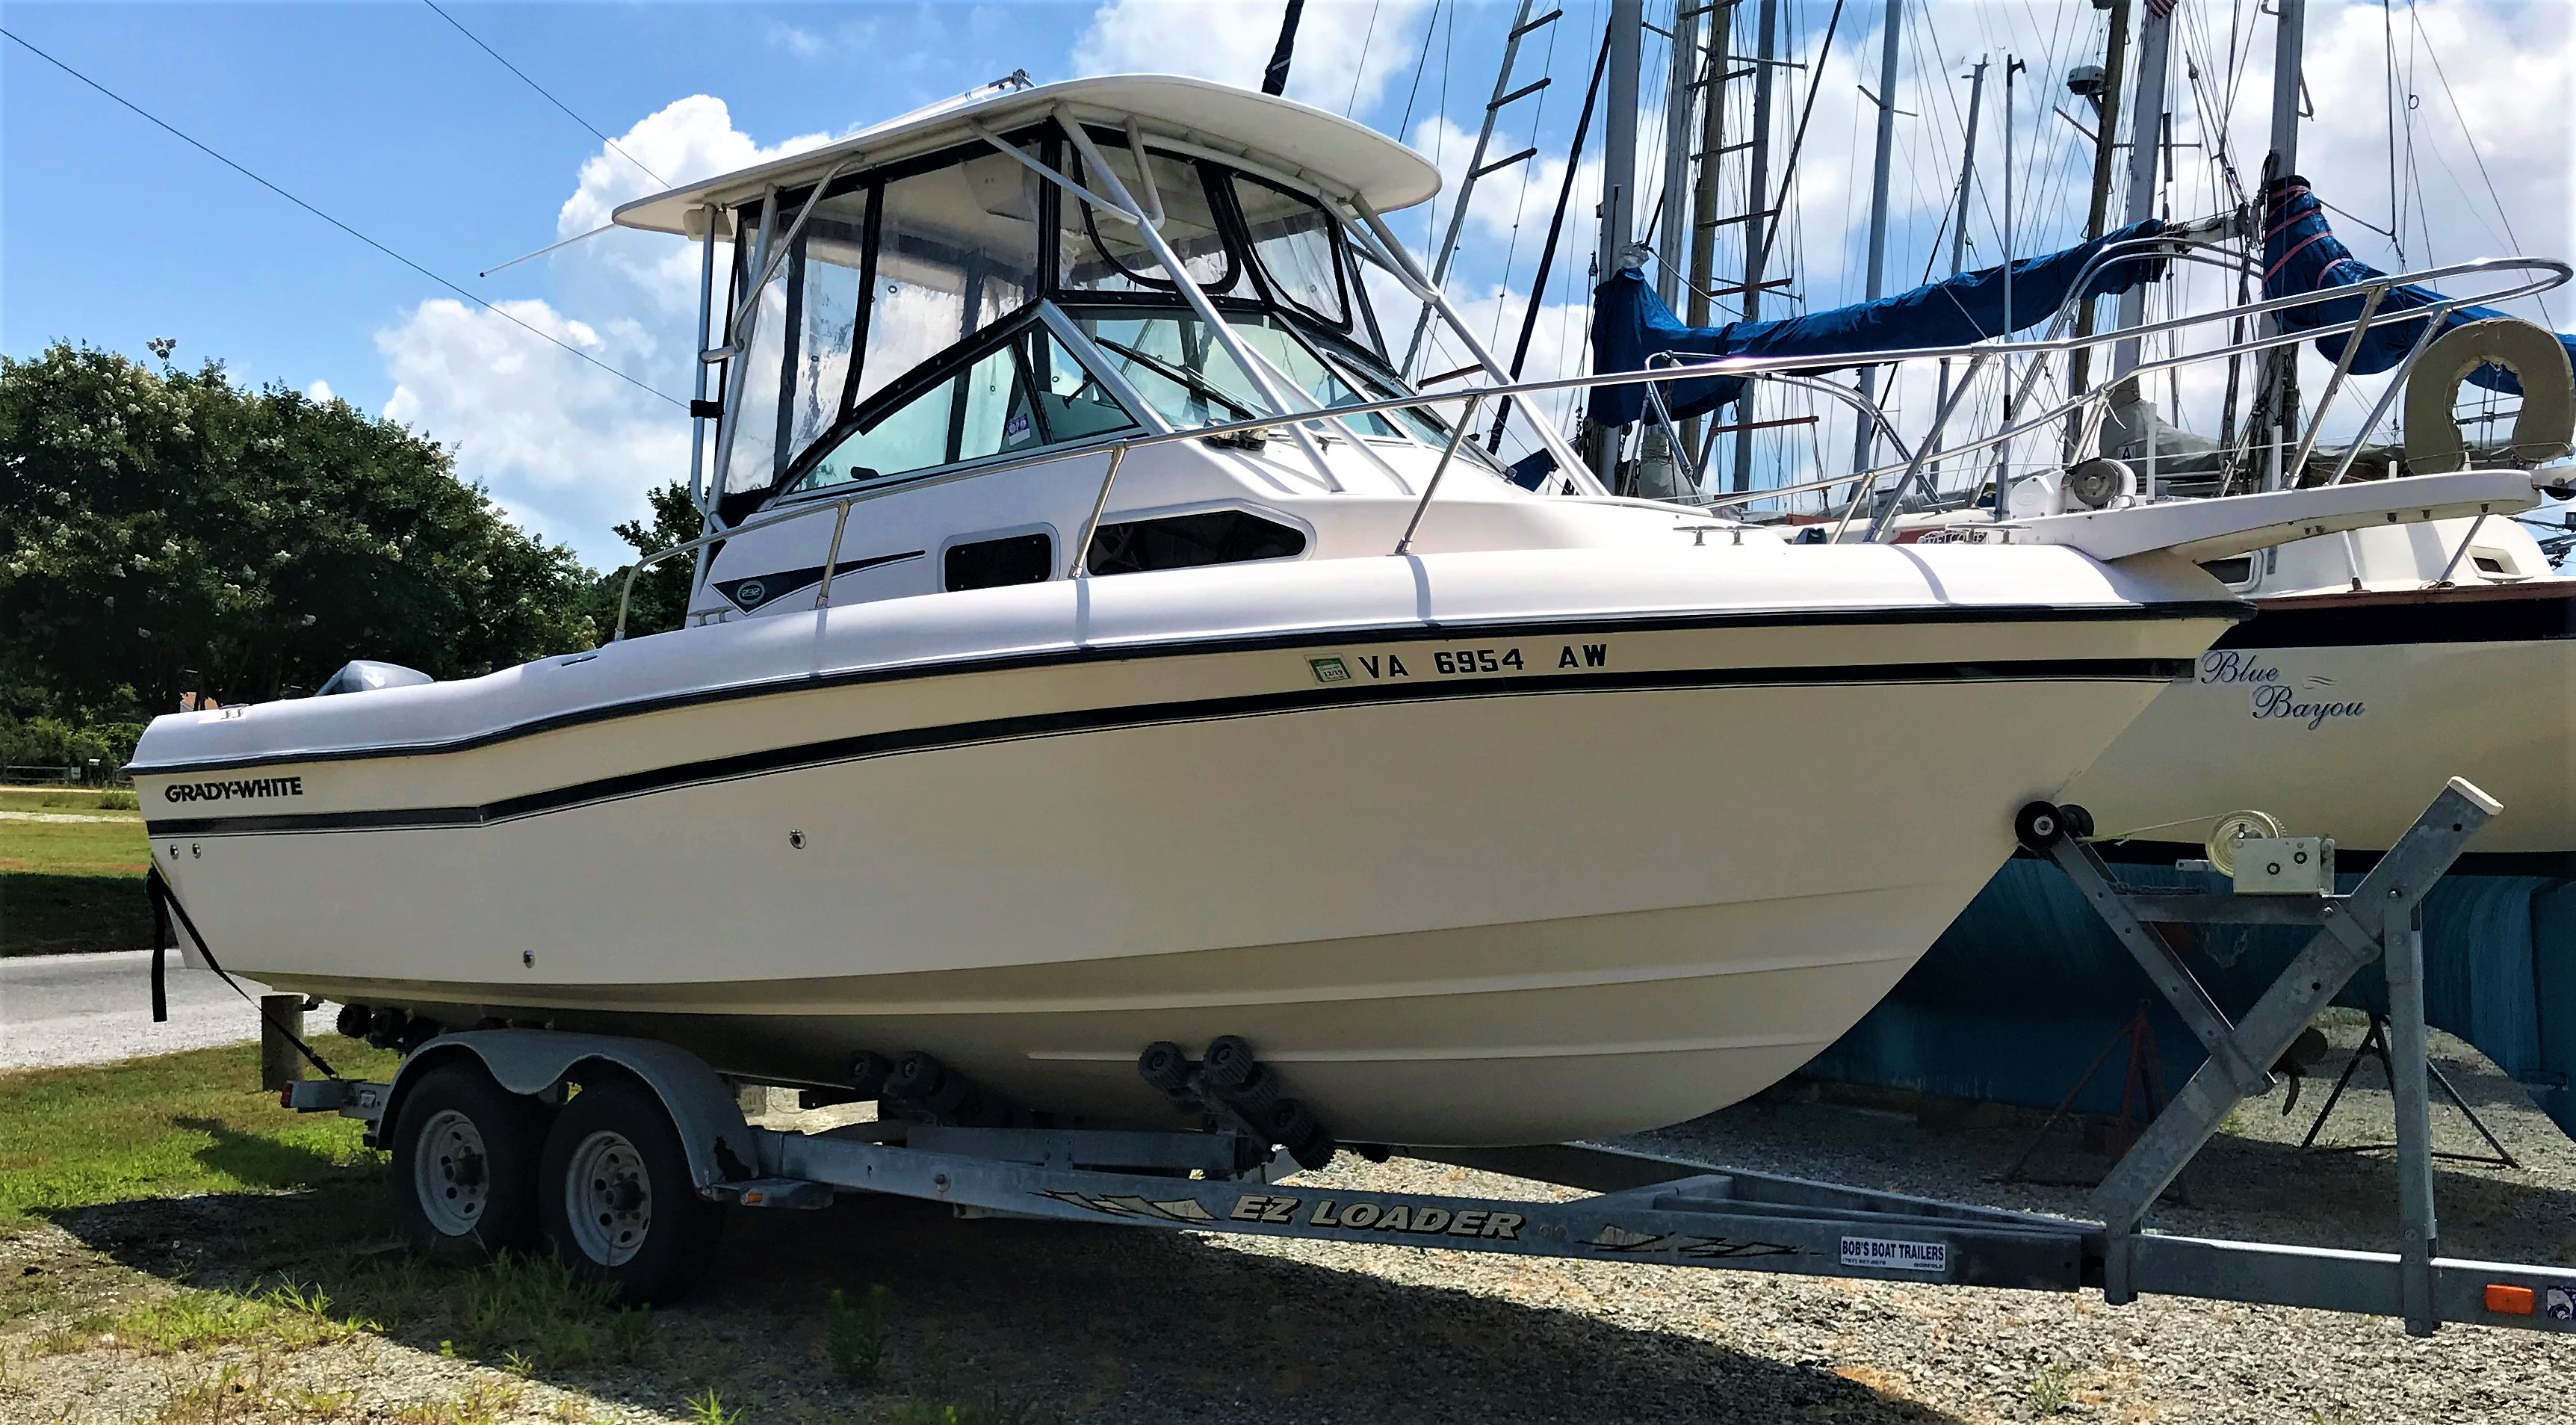 Boats – Deltaville Yachting Center and Chesapeake Yacht Sales